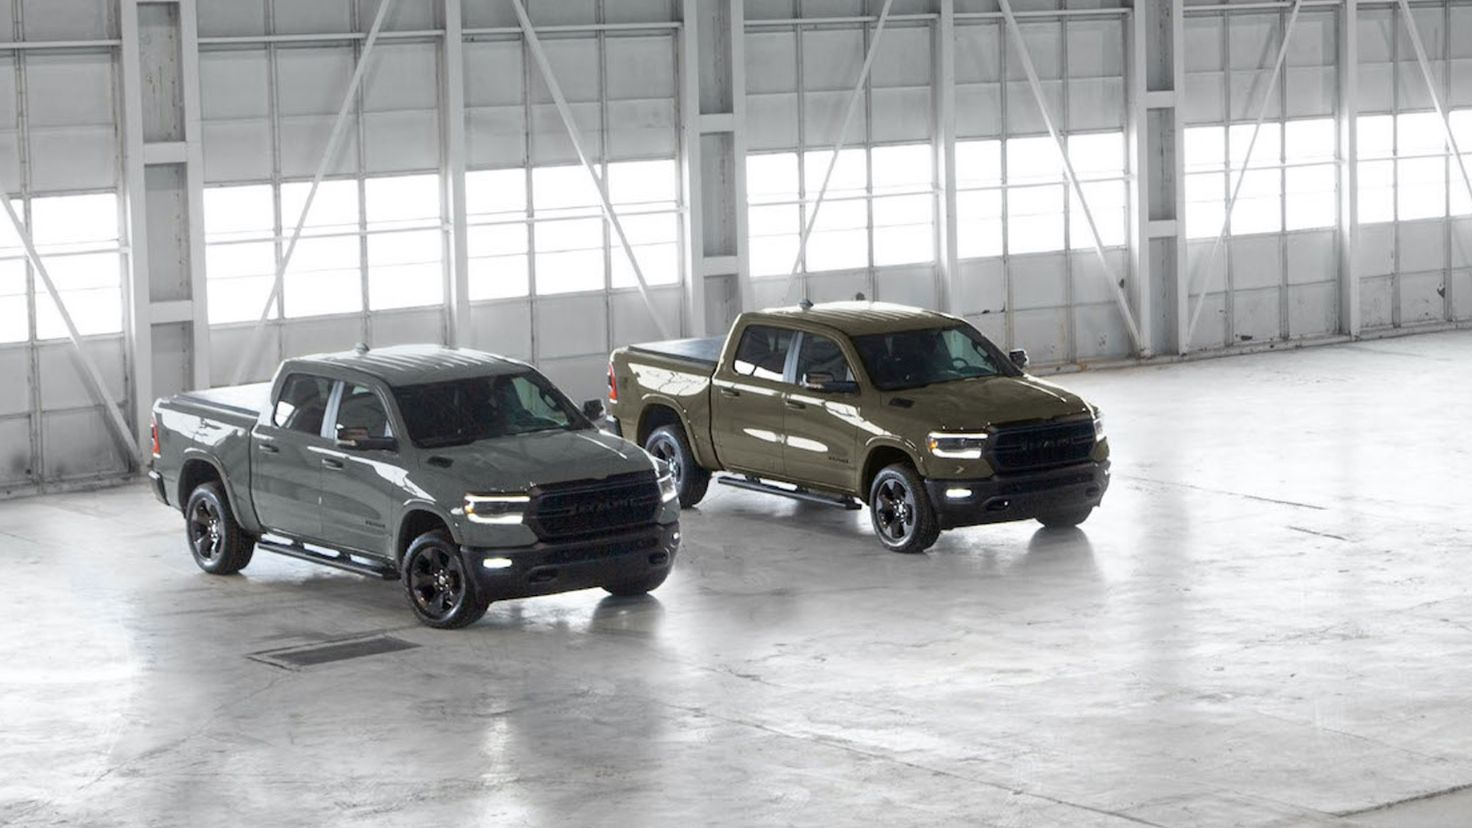 Ram 1500 Built To Serve Edition Is Back In New Navy Colors